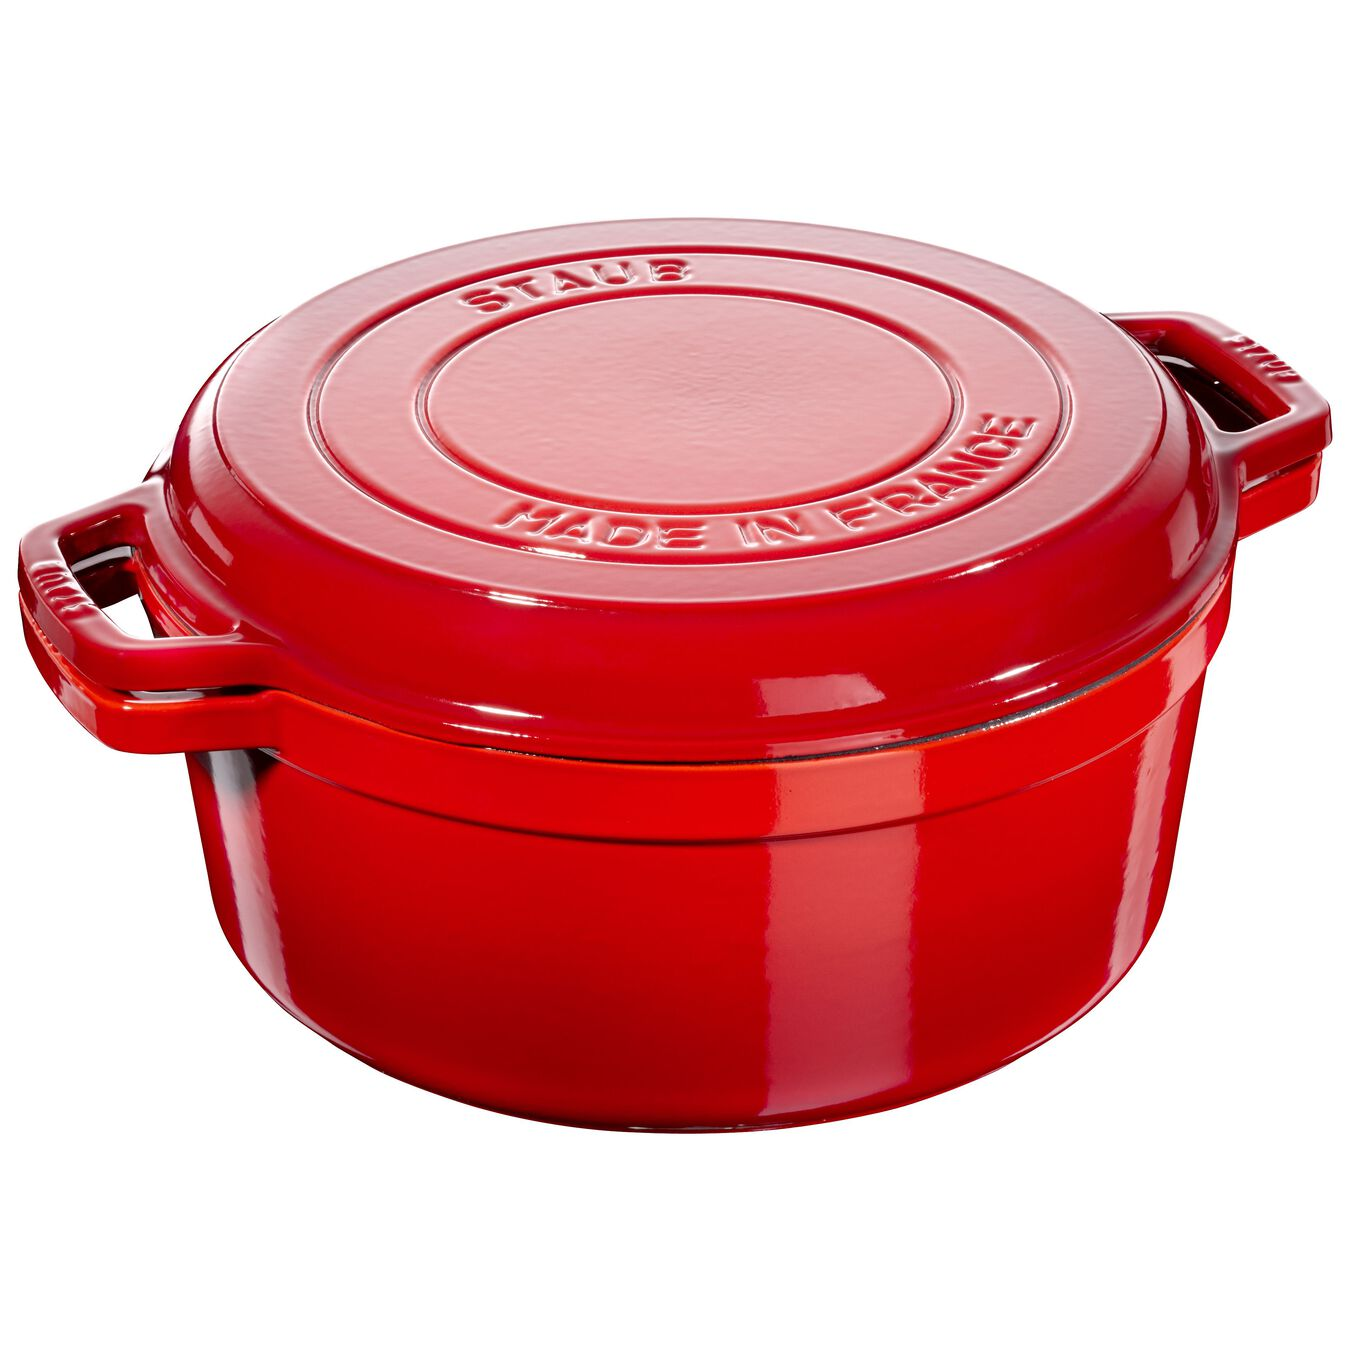 6 l Cast iron round Braise + Grill, Cherry - Visual Imperfections,,large 1